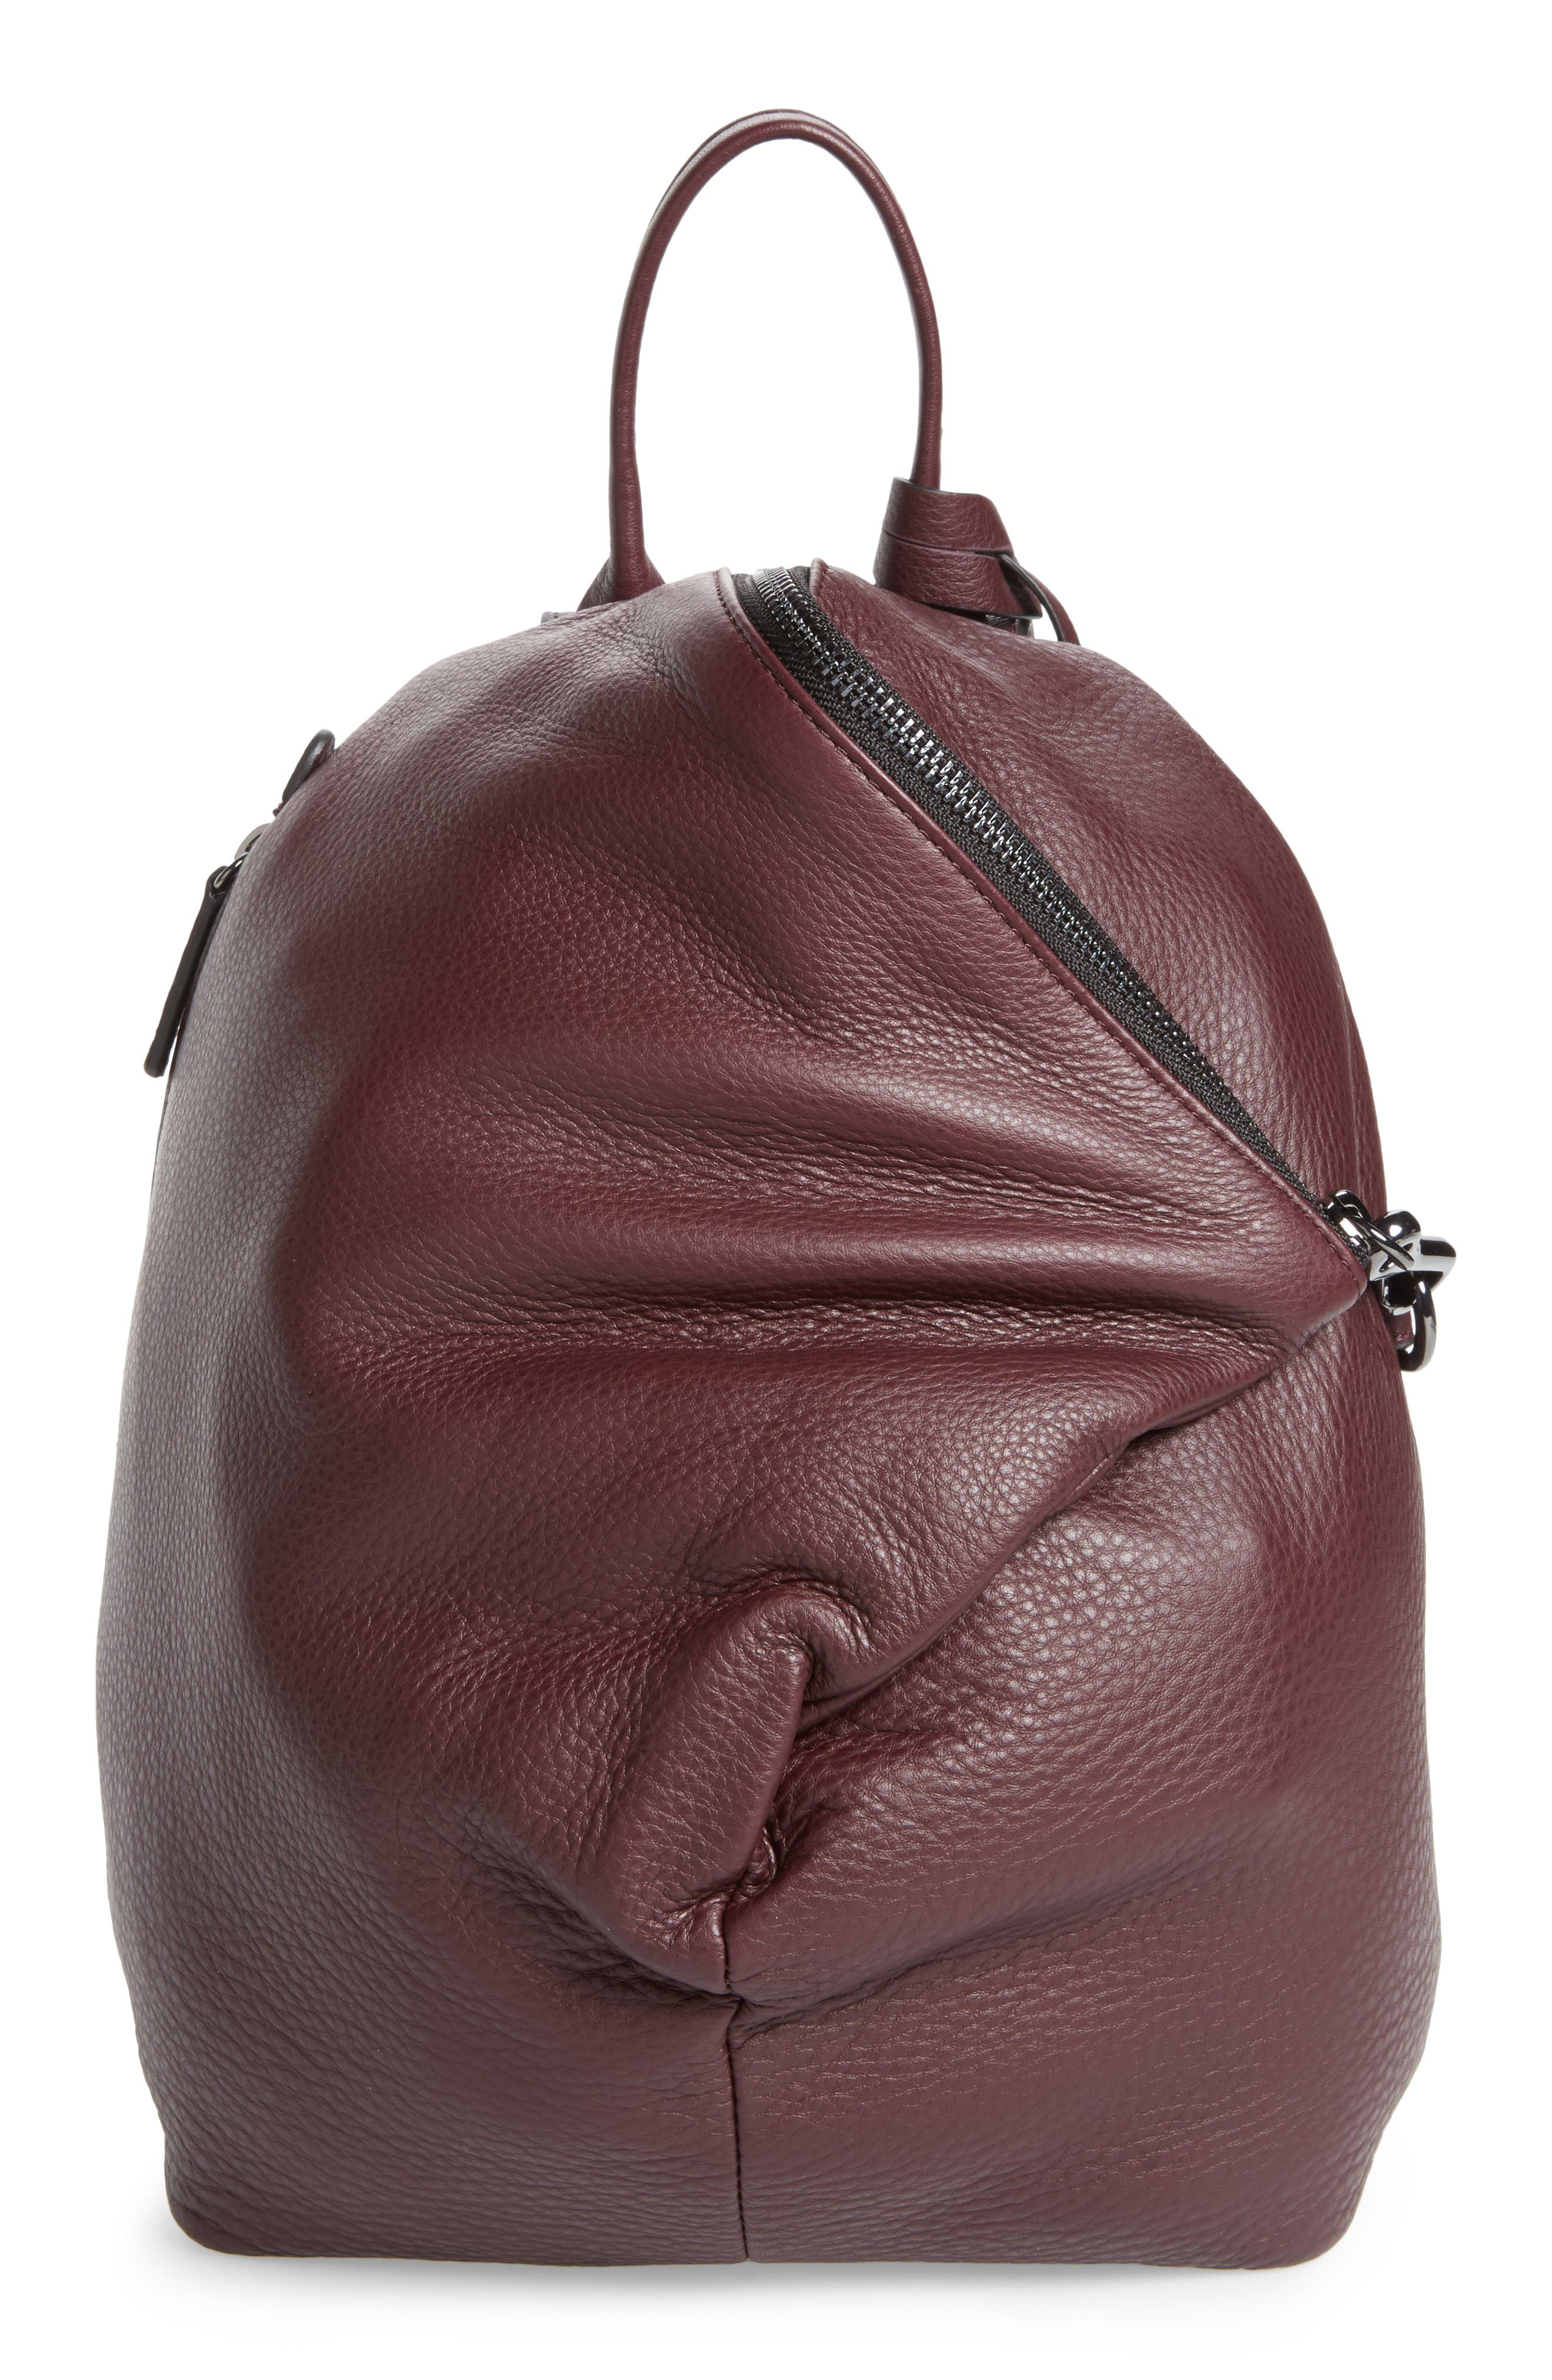 Vince Camuto Small Giani Leather Backpack